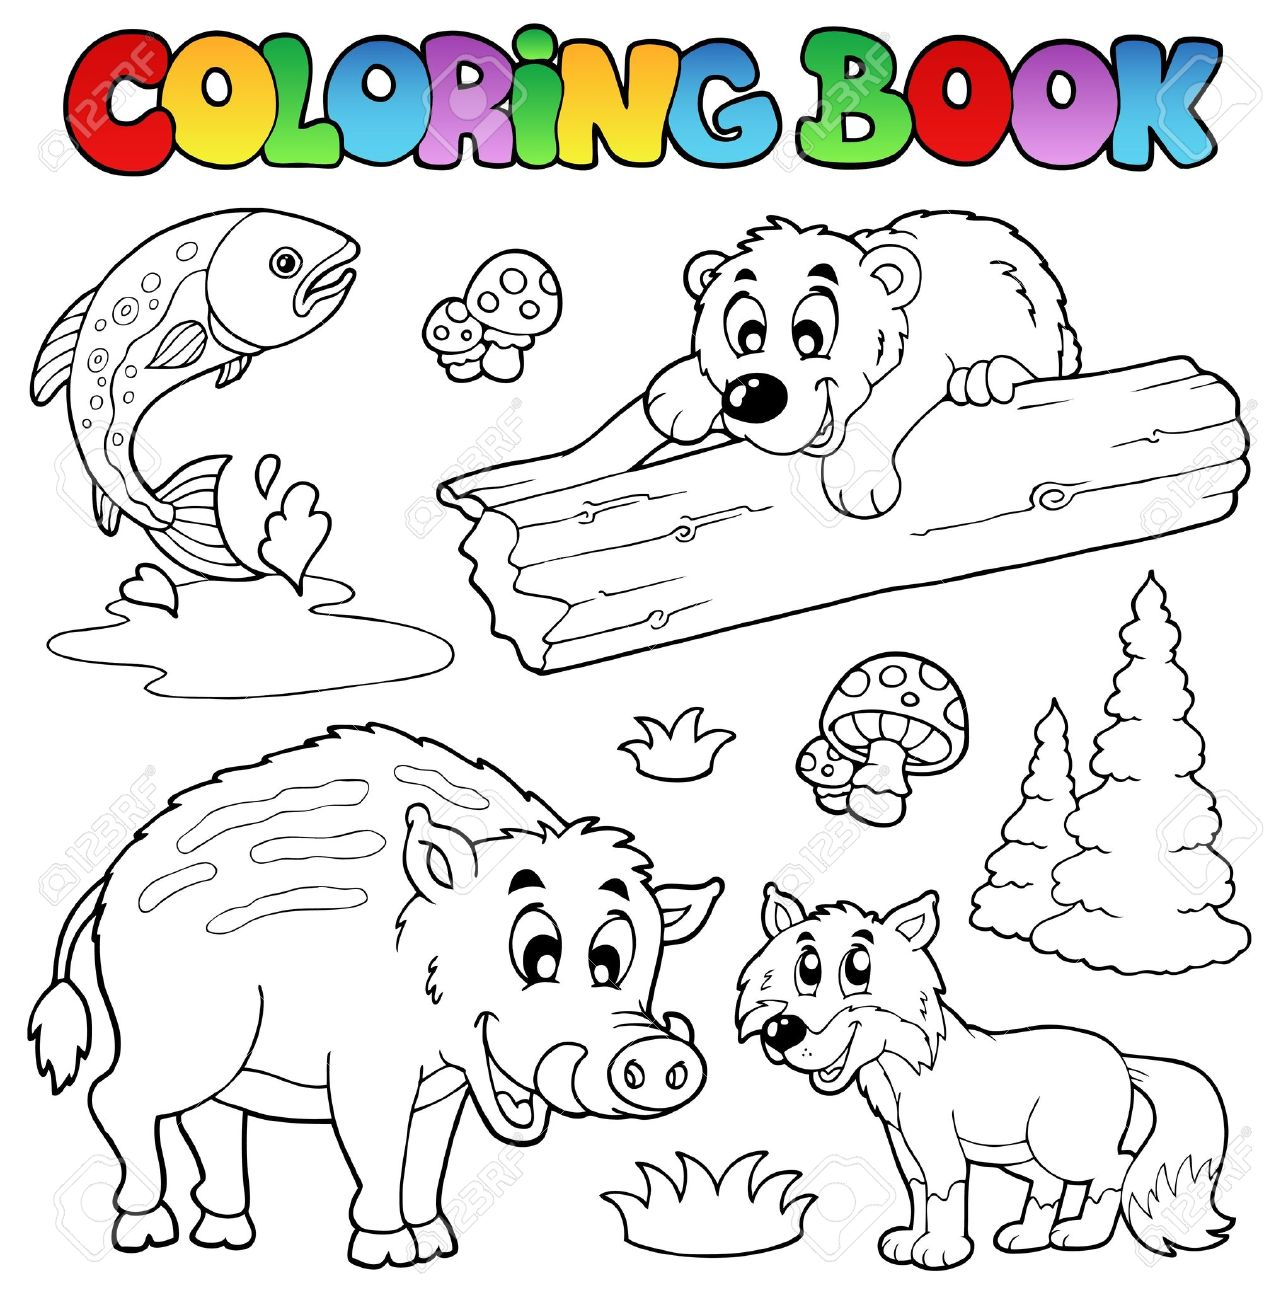 Coloring Book With Woodland Animals Stock Vector